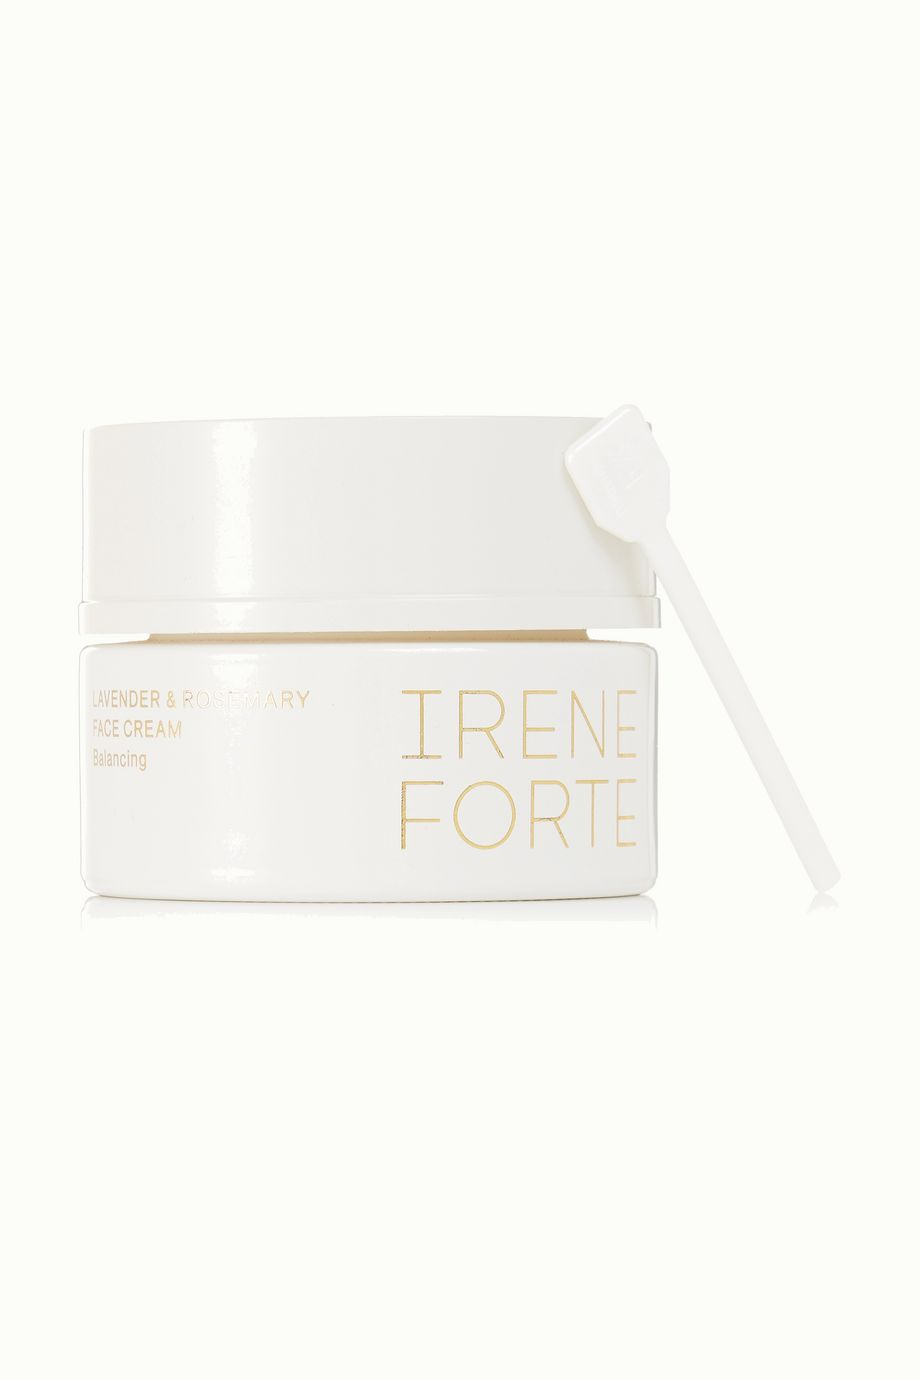 Irene Forte + NET SUSTAIN Balancing Lavender & Rosemary Face Cream, 50ml